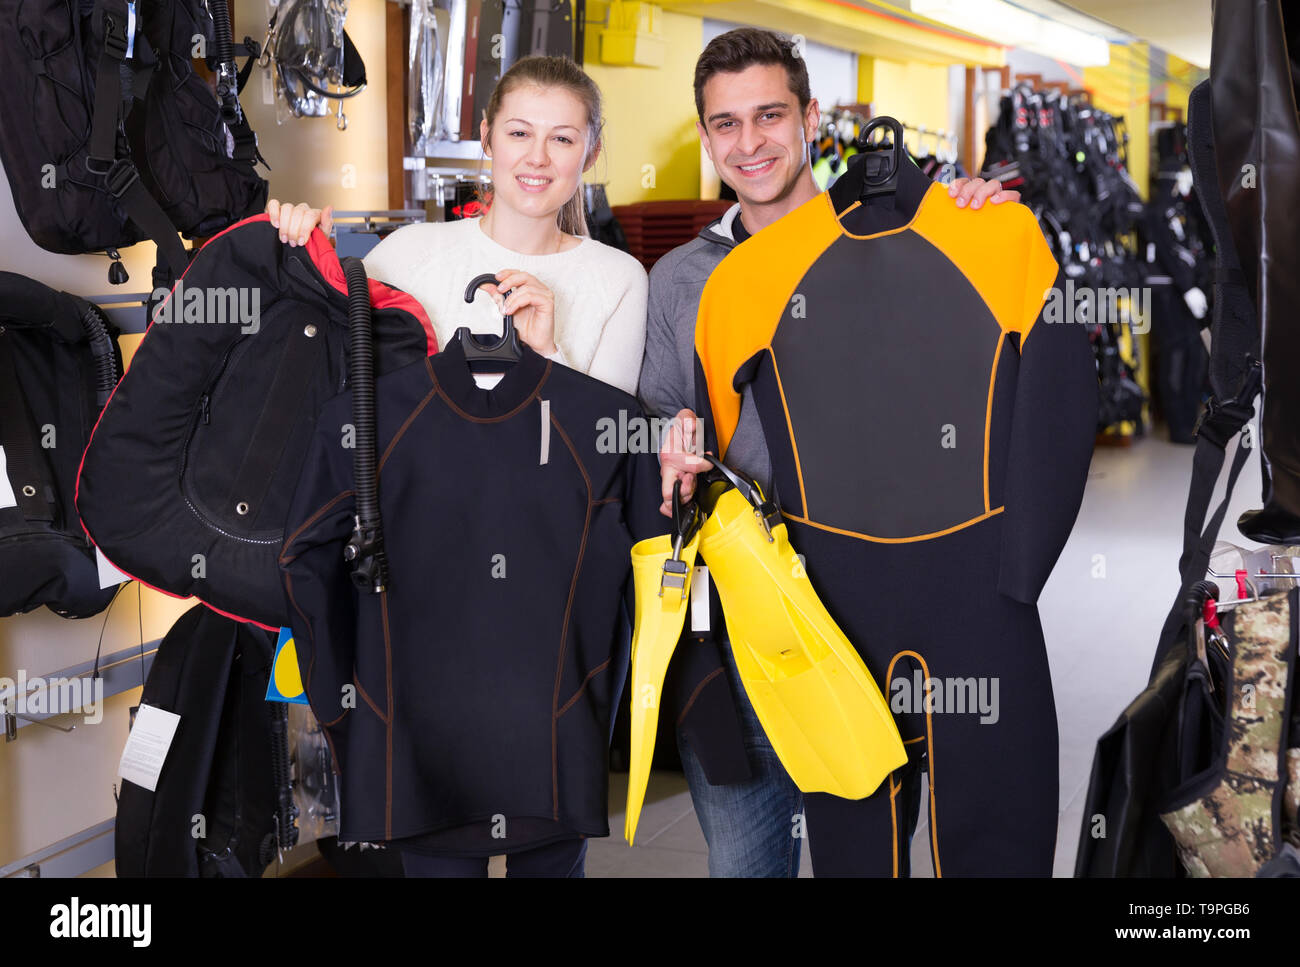 Sporty woman and man are satisfied of full set of diving equipment in the store. - Stock Image